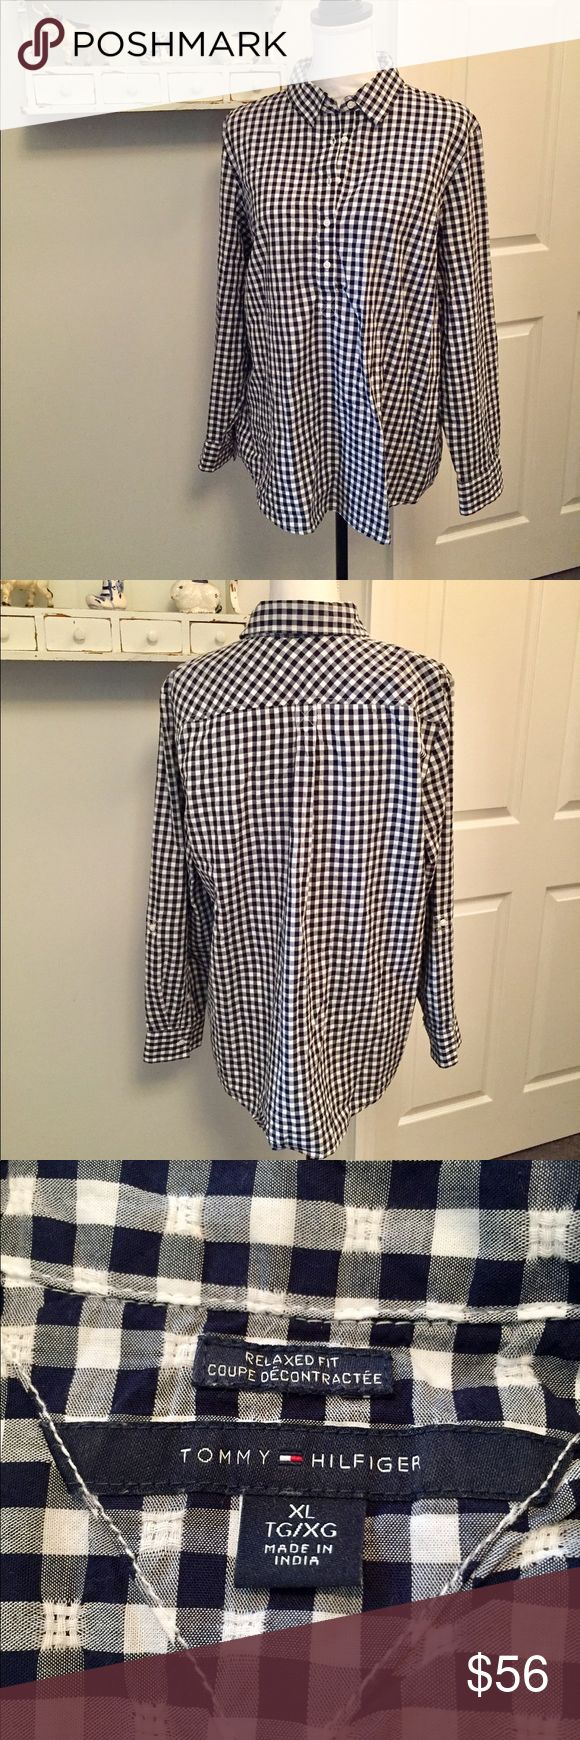 Tommy Hilfiger Checker Shirt 🌷 Great shirt with jeans or leggings! I'm colorblind w/certain colors but I think this is navy blue and not black. Worn twice. Tommy Hilfiger Tops